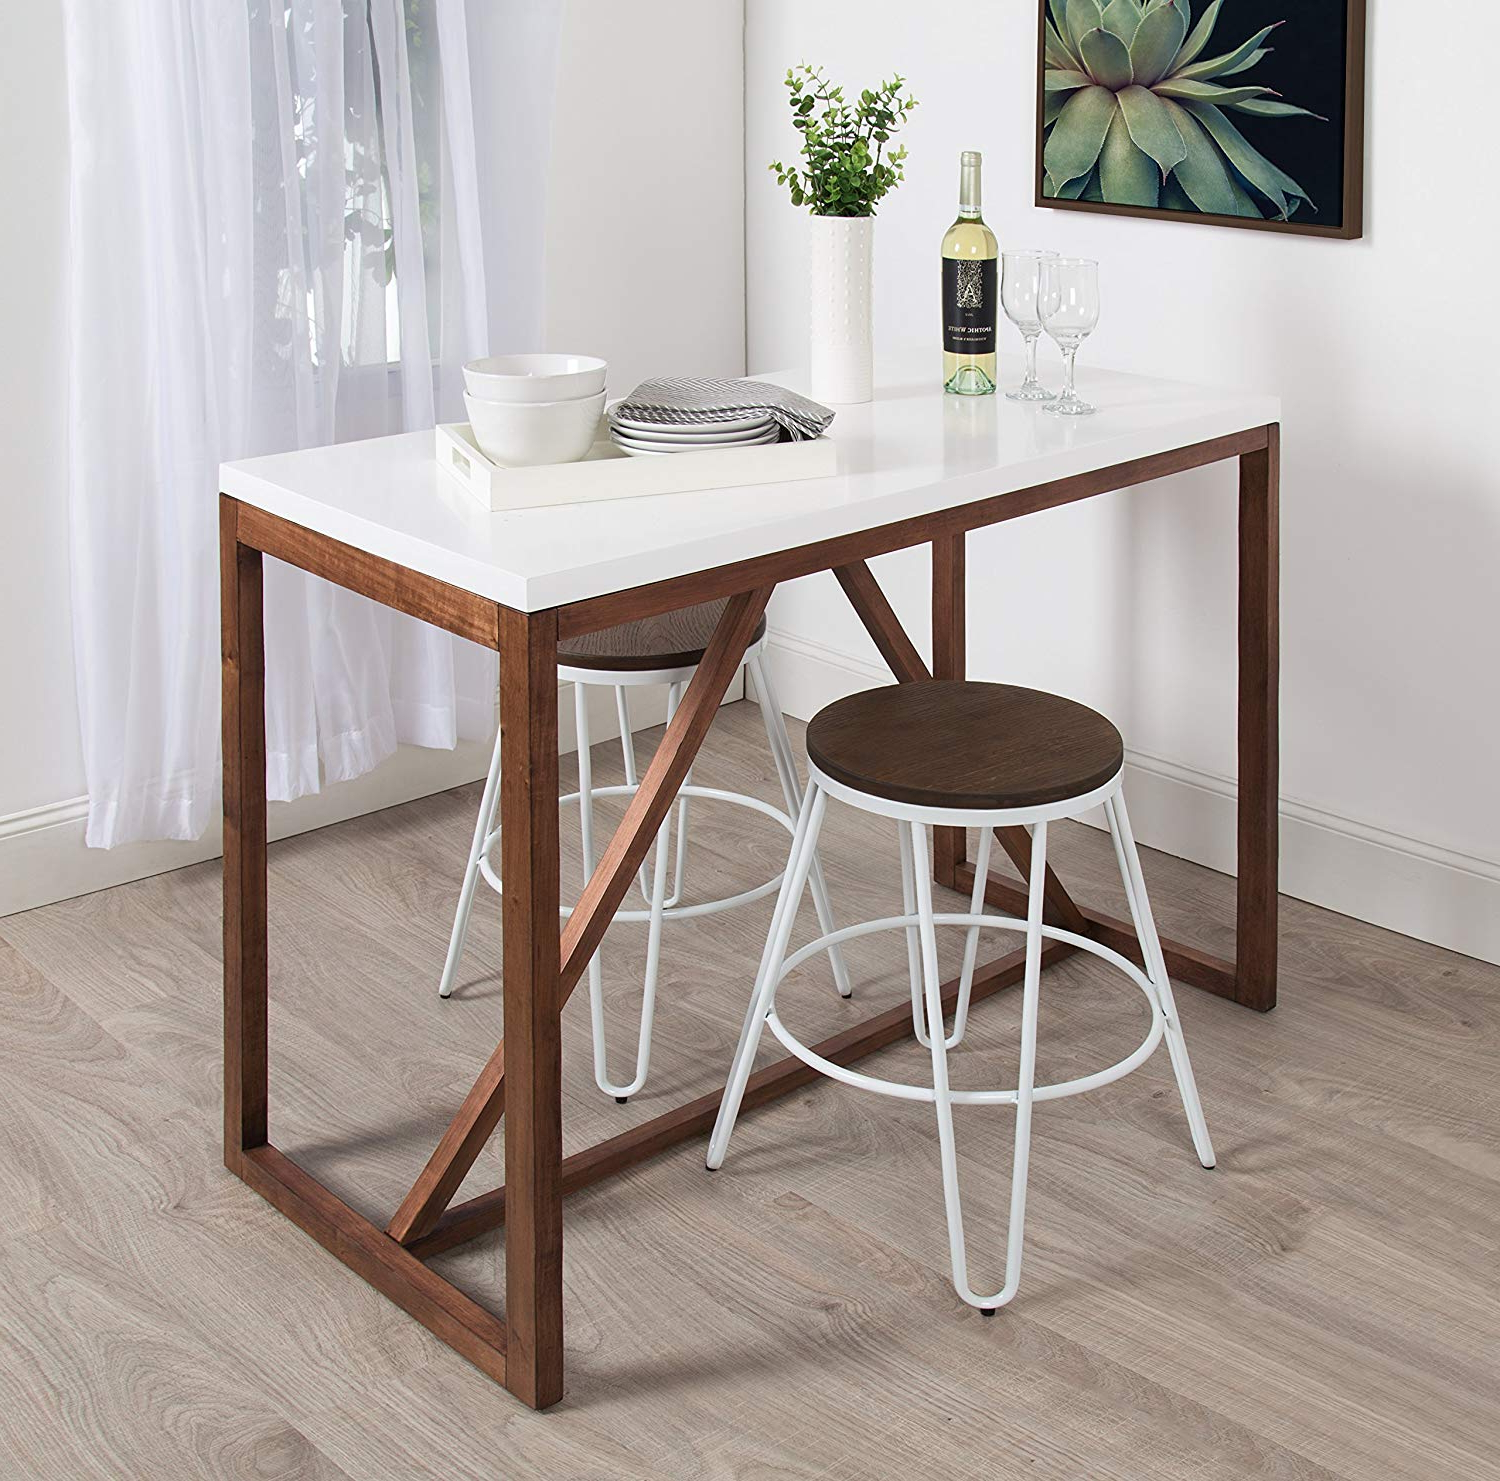 Amazon: Kate And Laurel Kaya 36 Inch Tall Pub/bar Table, Two In Fashionable Kaya 3 Piece Dining Sets (View 4 of 25)